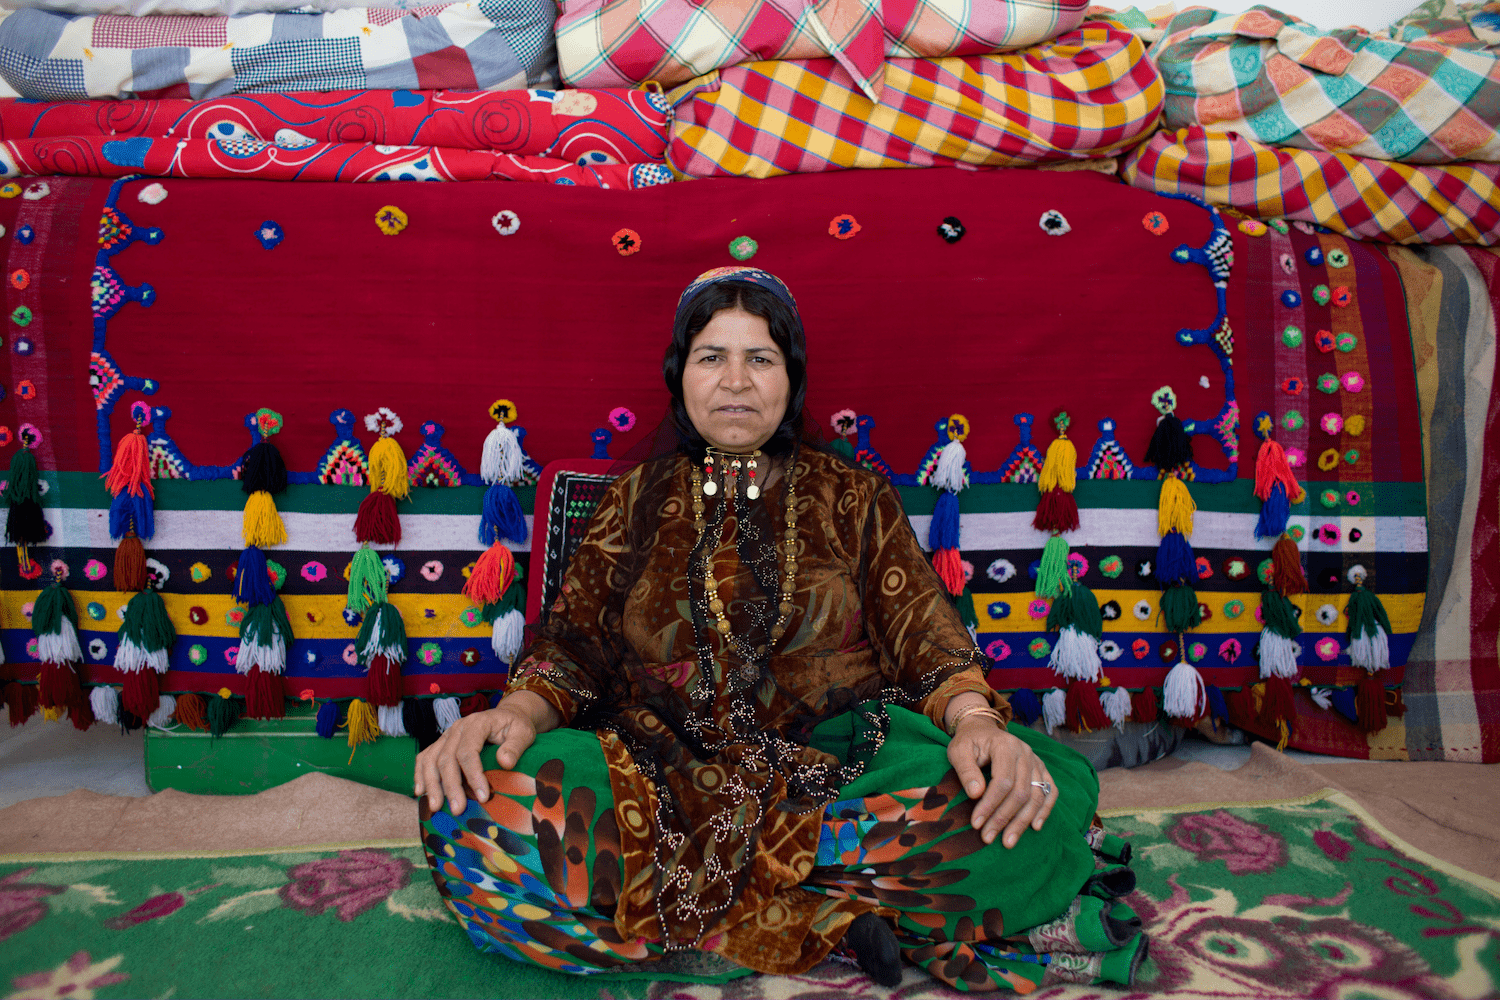 Sustainability in my work as a photographer: interview with Ramona Razaghmanesh on her international journey